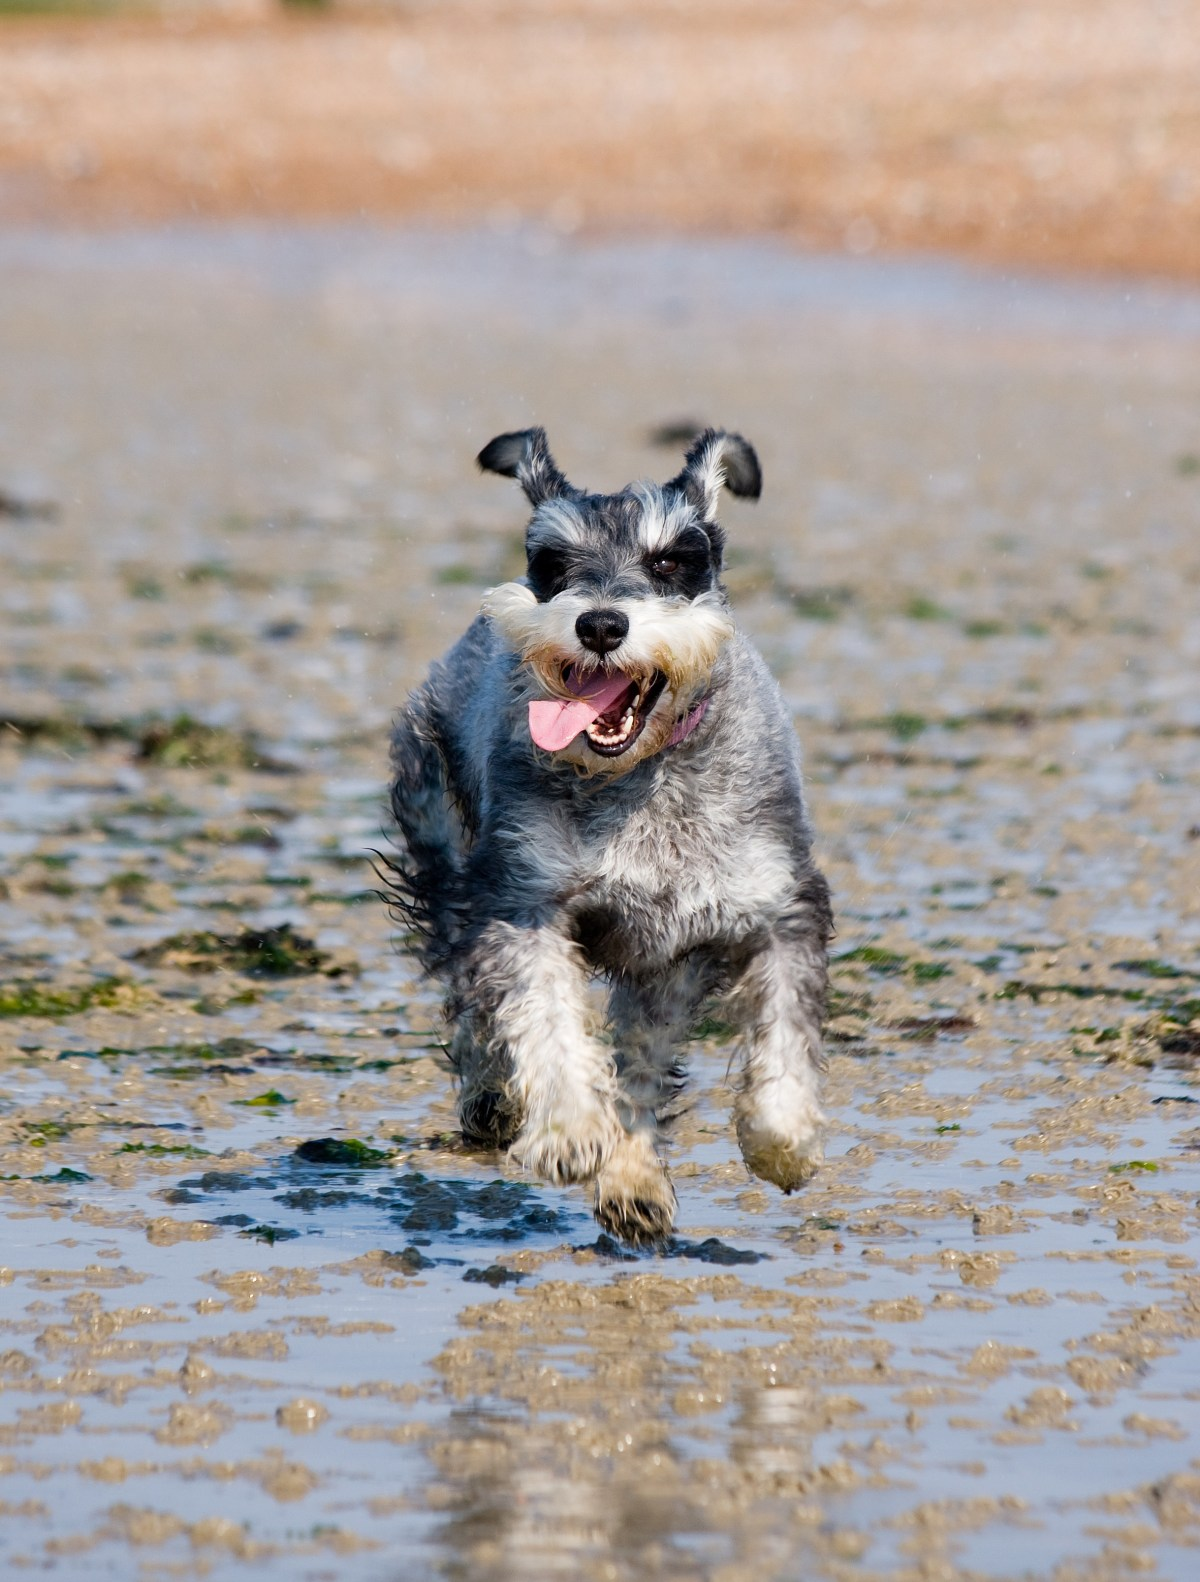 I Want To Download Cute Wallpapers Salt And Pepper Miniature Schnauzer Running On Wet Sand